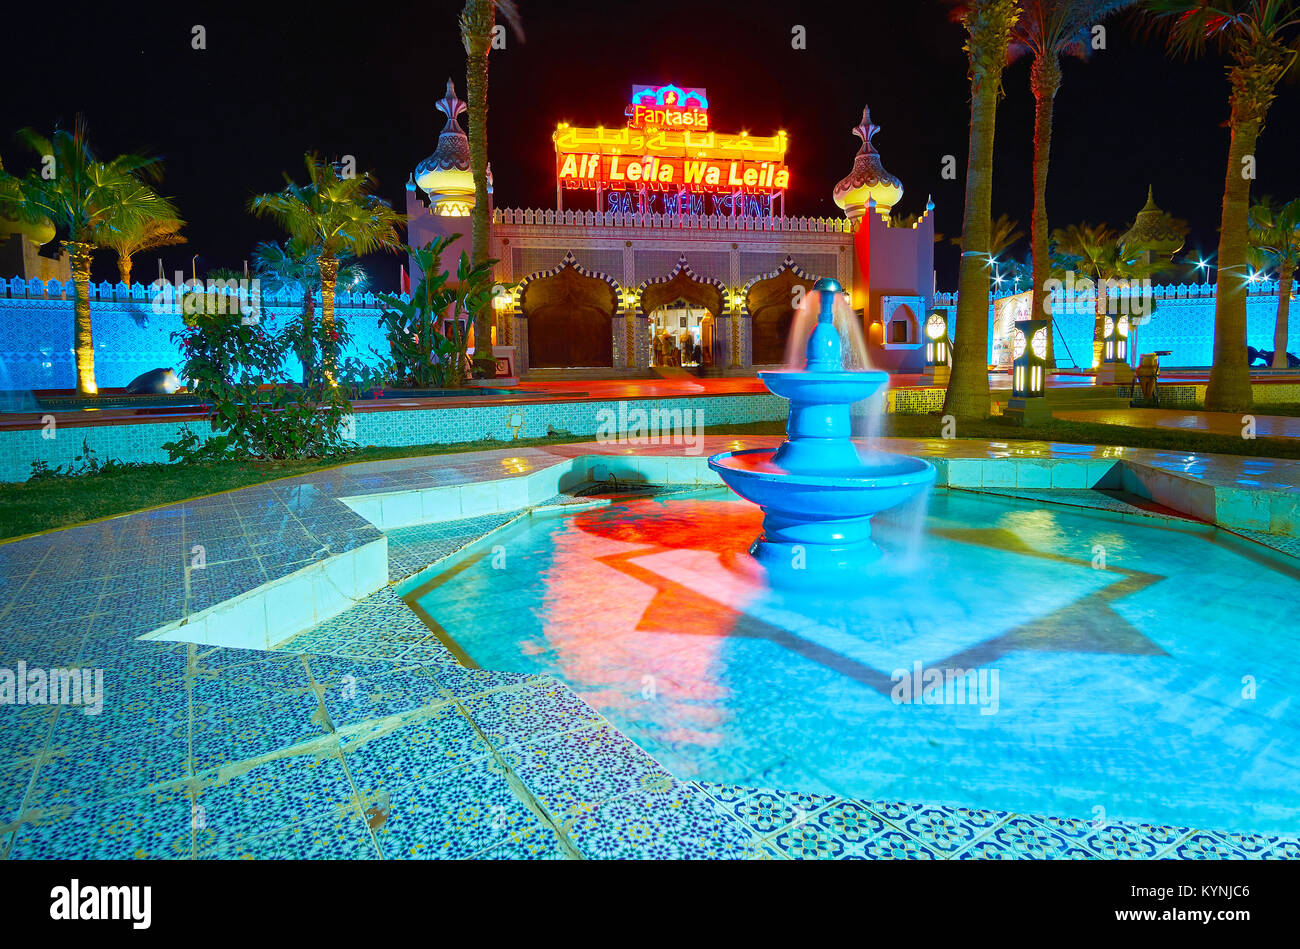 SHARM EL SHEIKH, EGYPT- DECEMBER 15, 2017: The scenic evening garden of Fantasia Palace (1001 nights palace) with - Stock Image